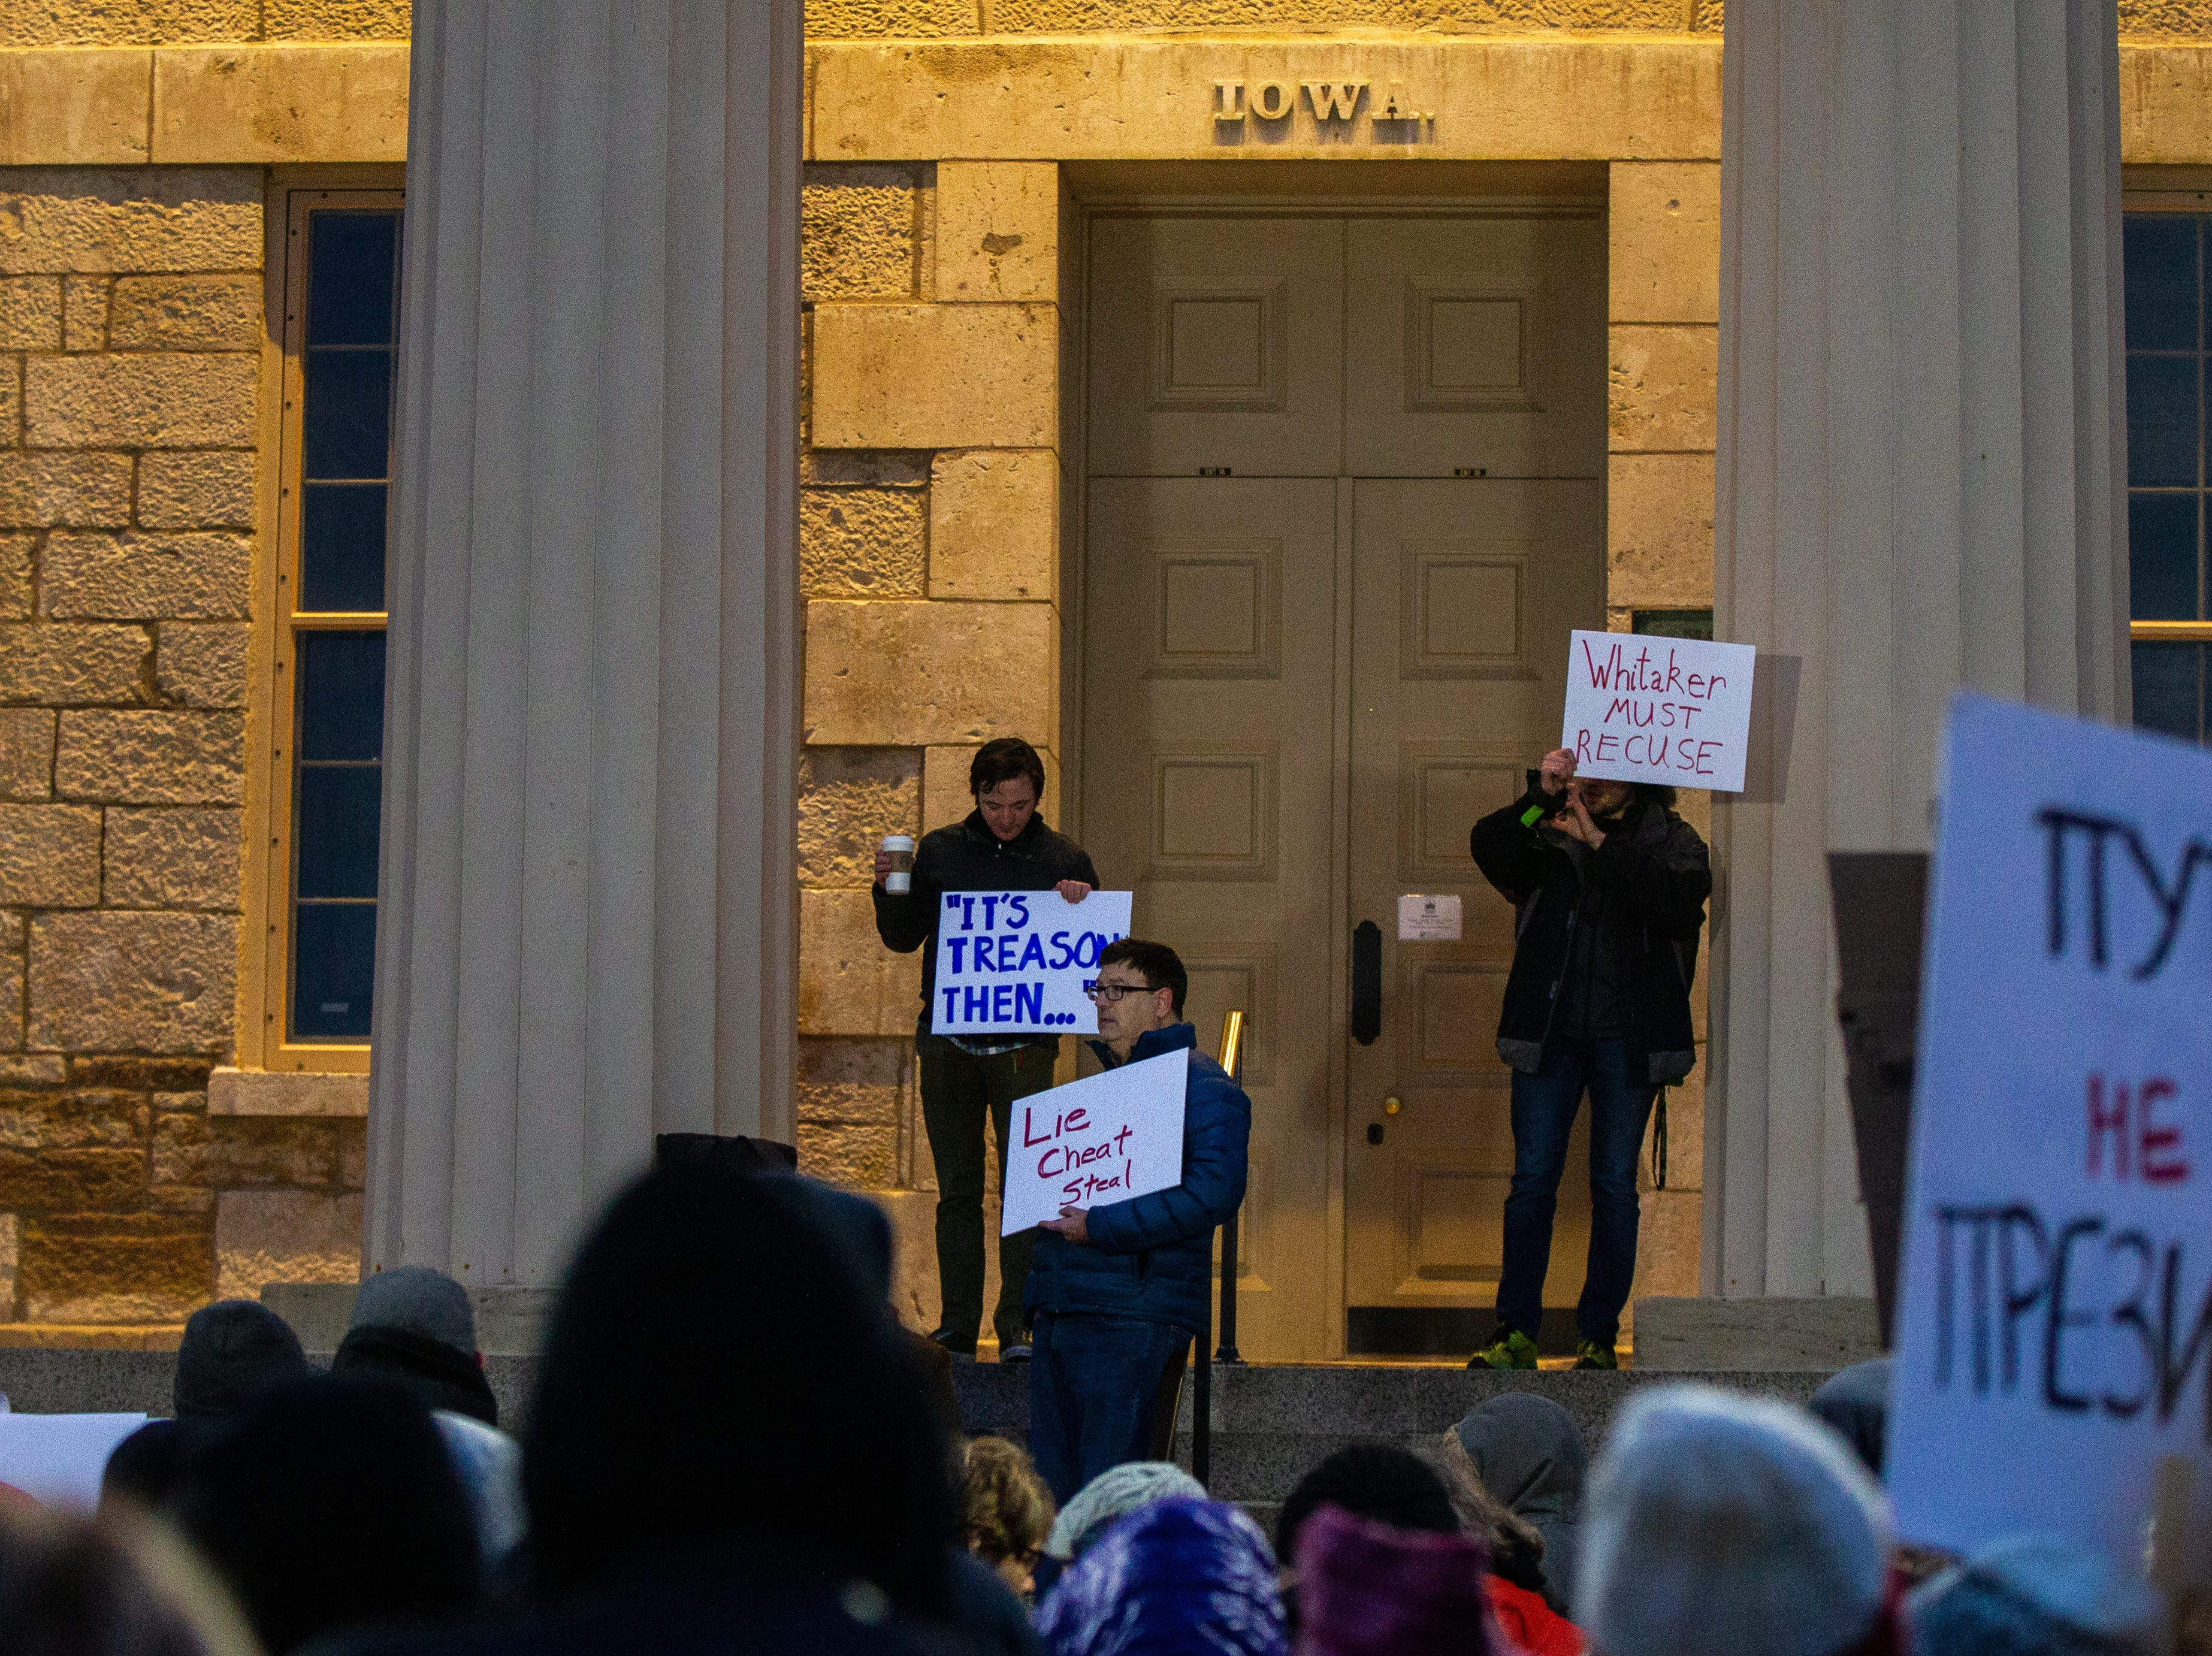 Community members gather during a protest over the appointment of Matt Whitaker as acting U.S. Attorney General on Thursday, Nov. 8, 2018, on east side of the Pentacrest in Iowa City.